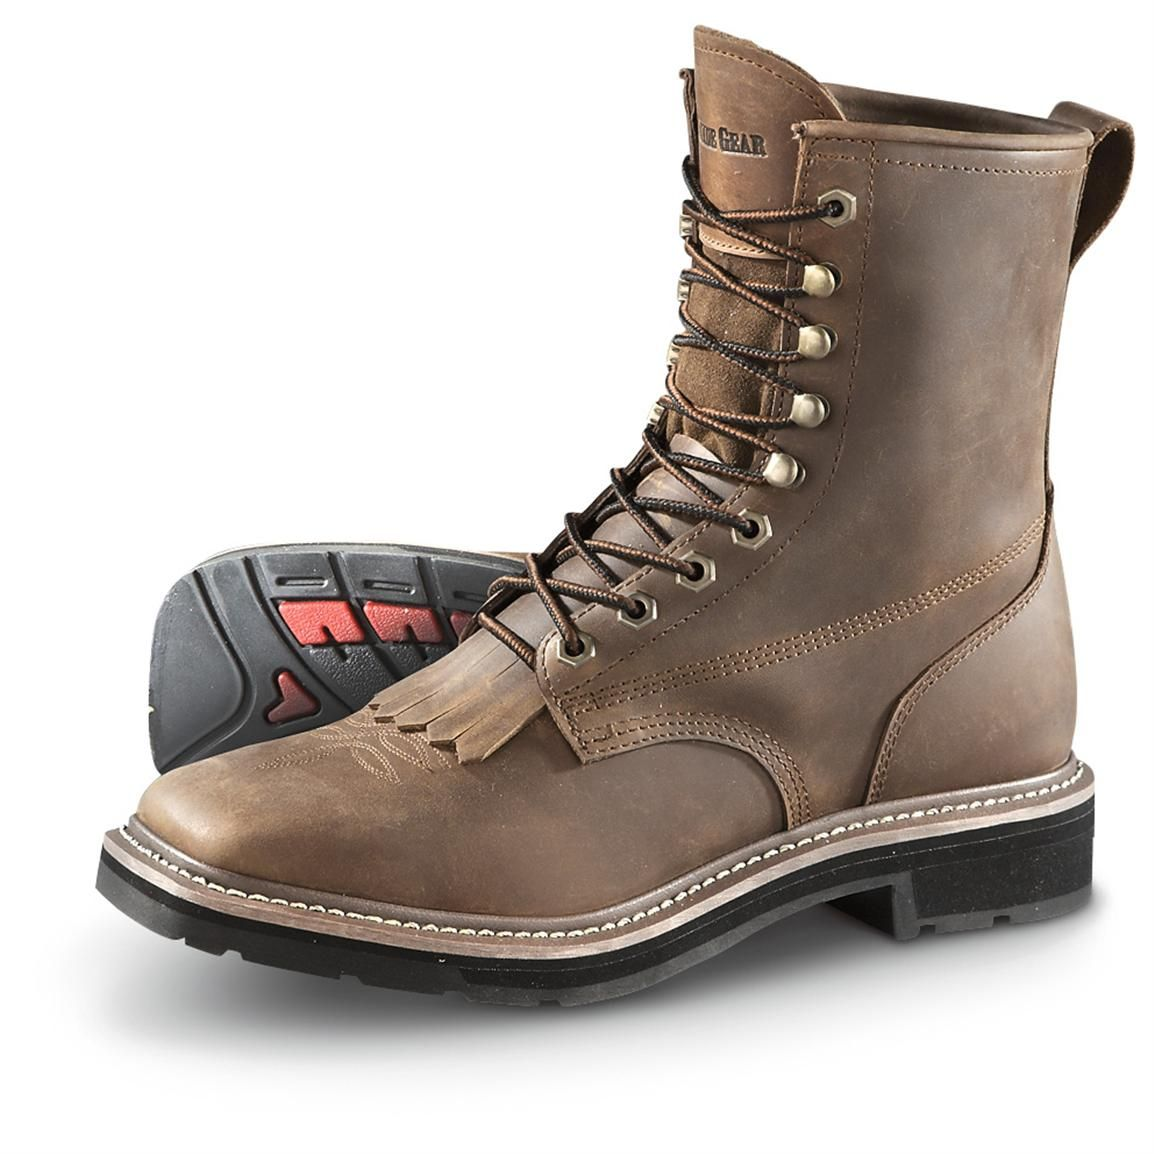 Guide Gear Men's Square Toe Lacer Work Boots | Squares, Toe and ...